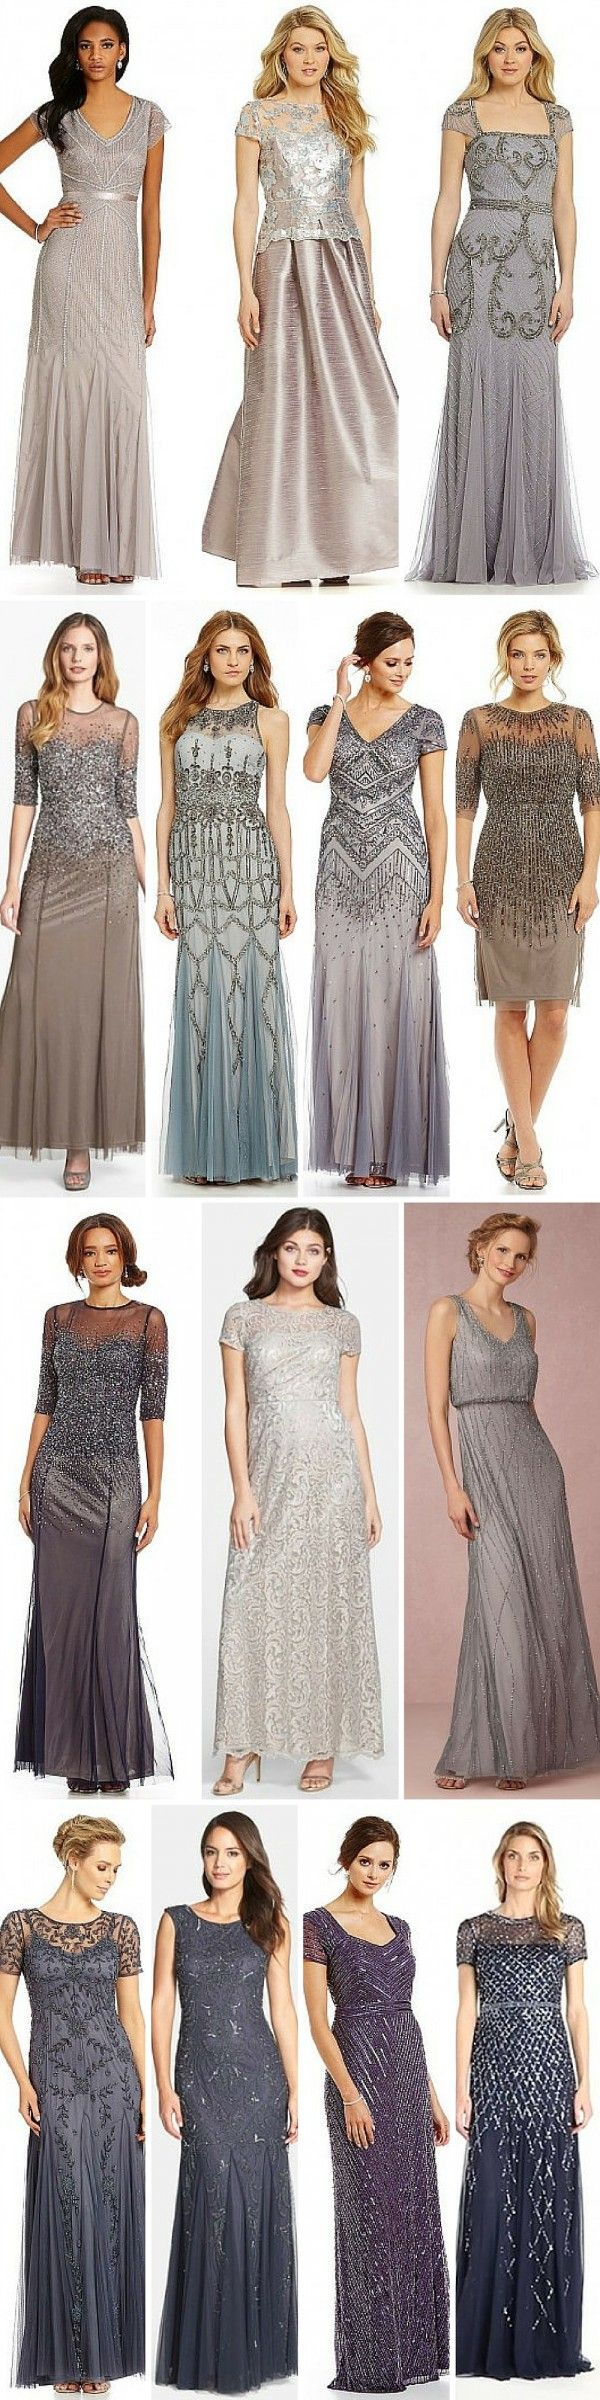 Adrianna Papell Mother of the Bride Dresses - Beaded Dresses